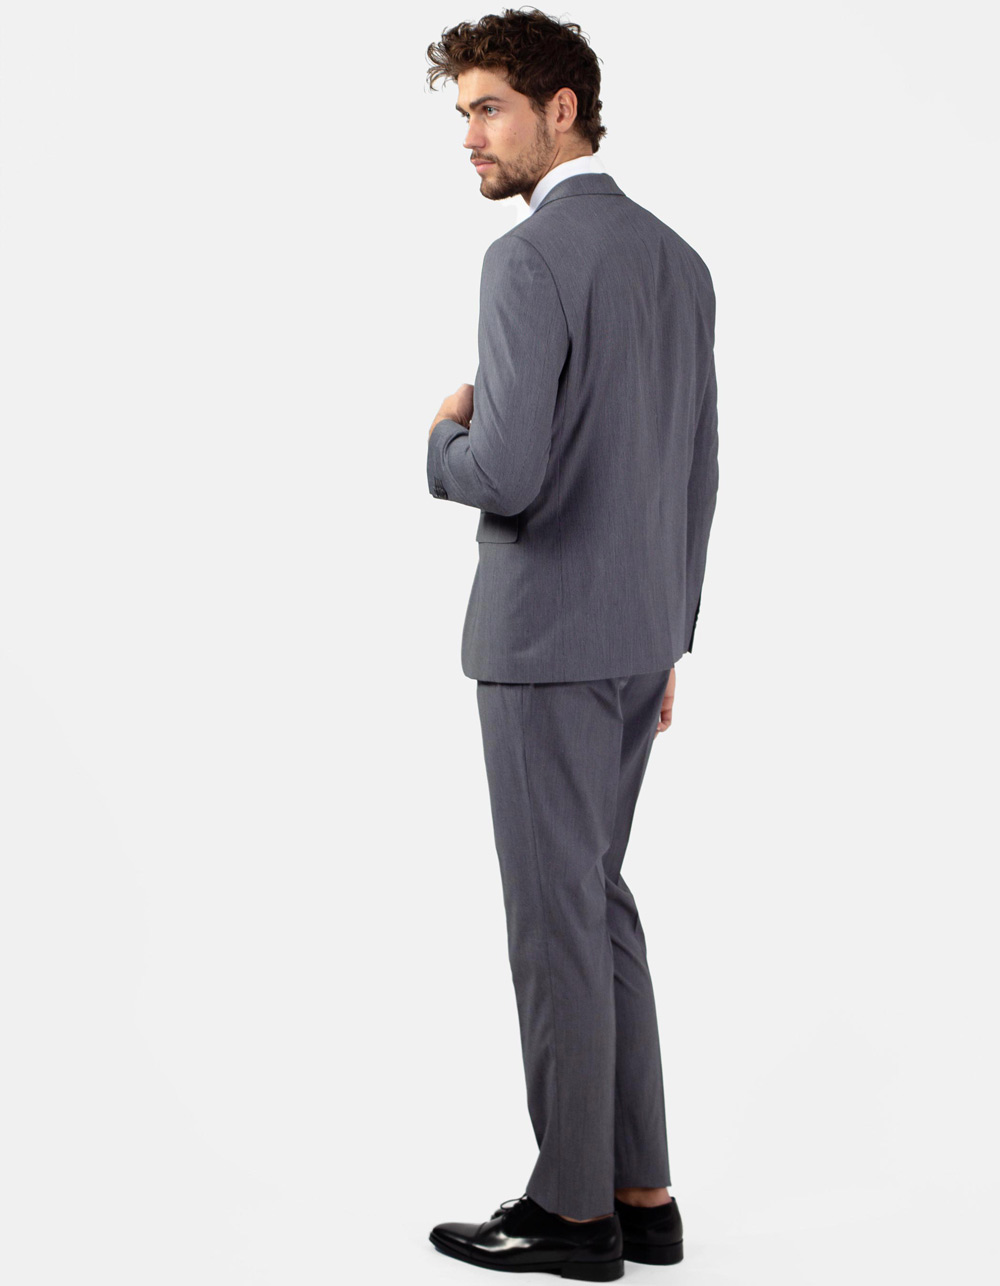 Black micro stripe suit - Backside